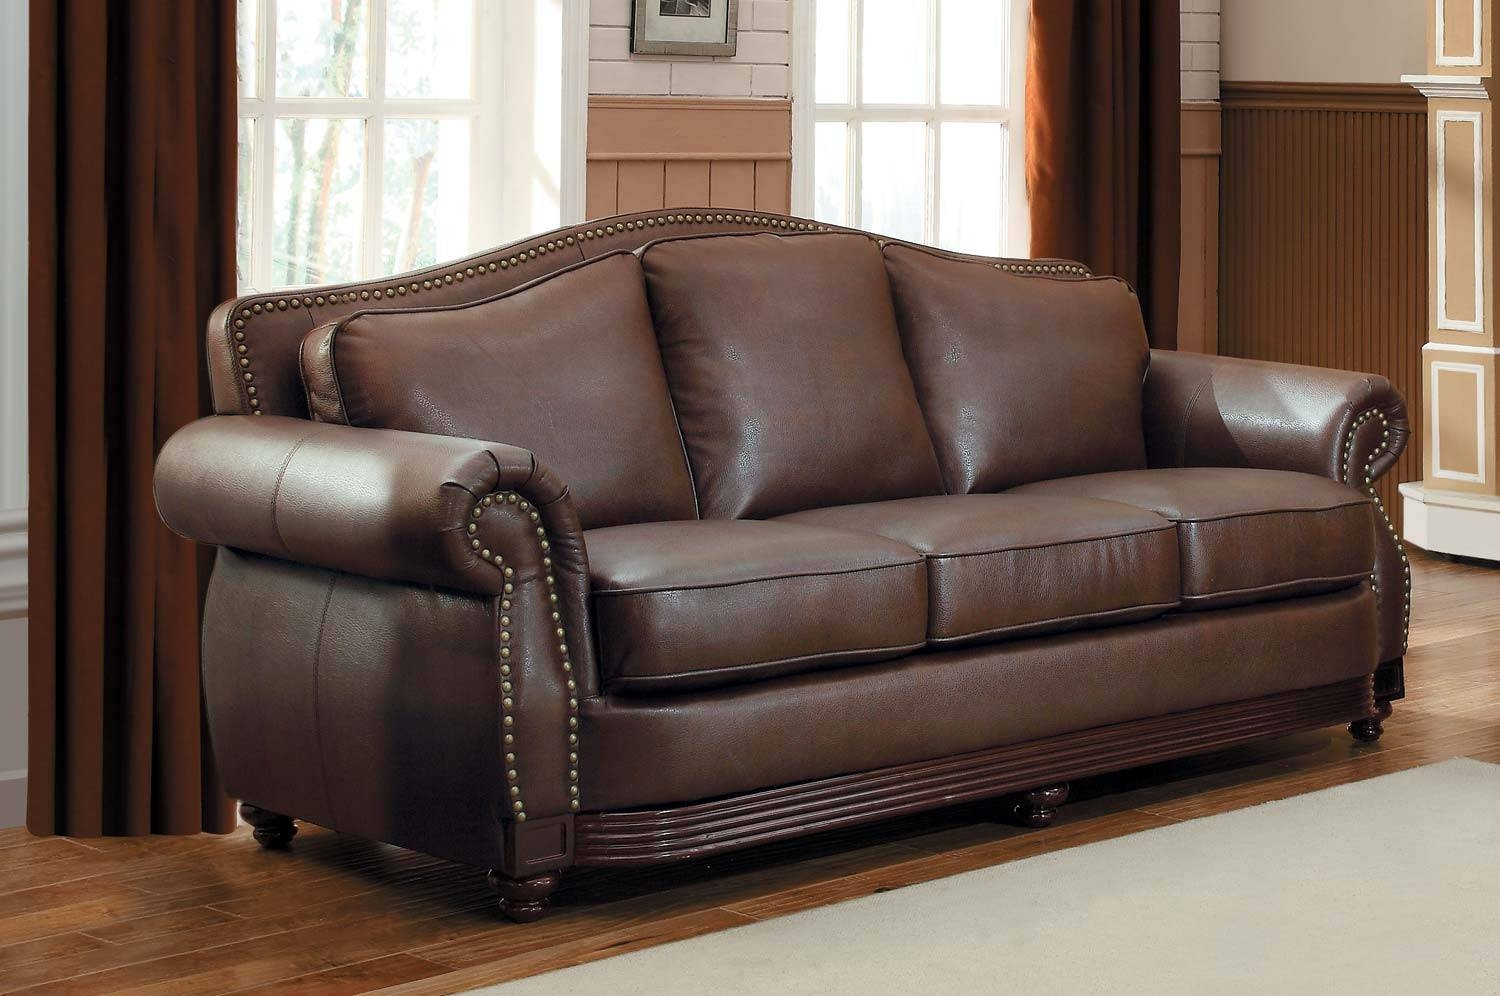 Care Bonded Leather Sofa Ideas — Home Design Stylinghome Design pertaining to Camelback Leather Sofas (Image 3 of 15)